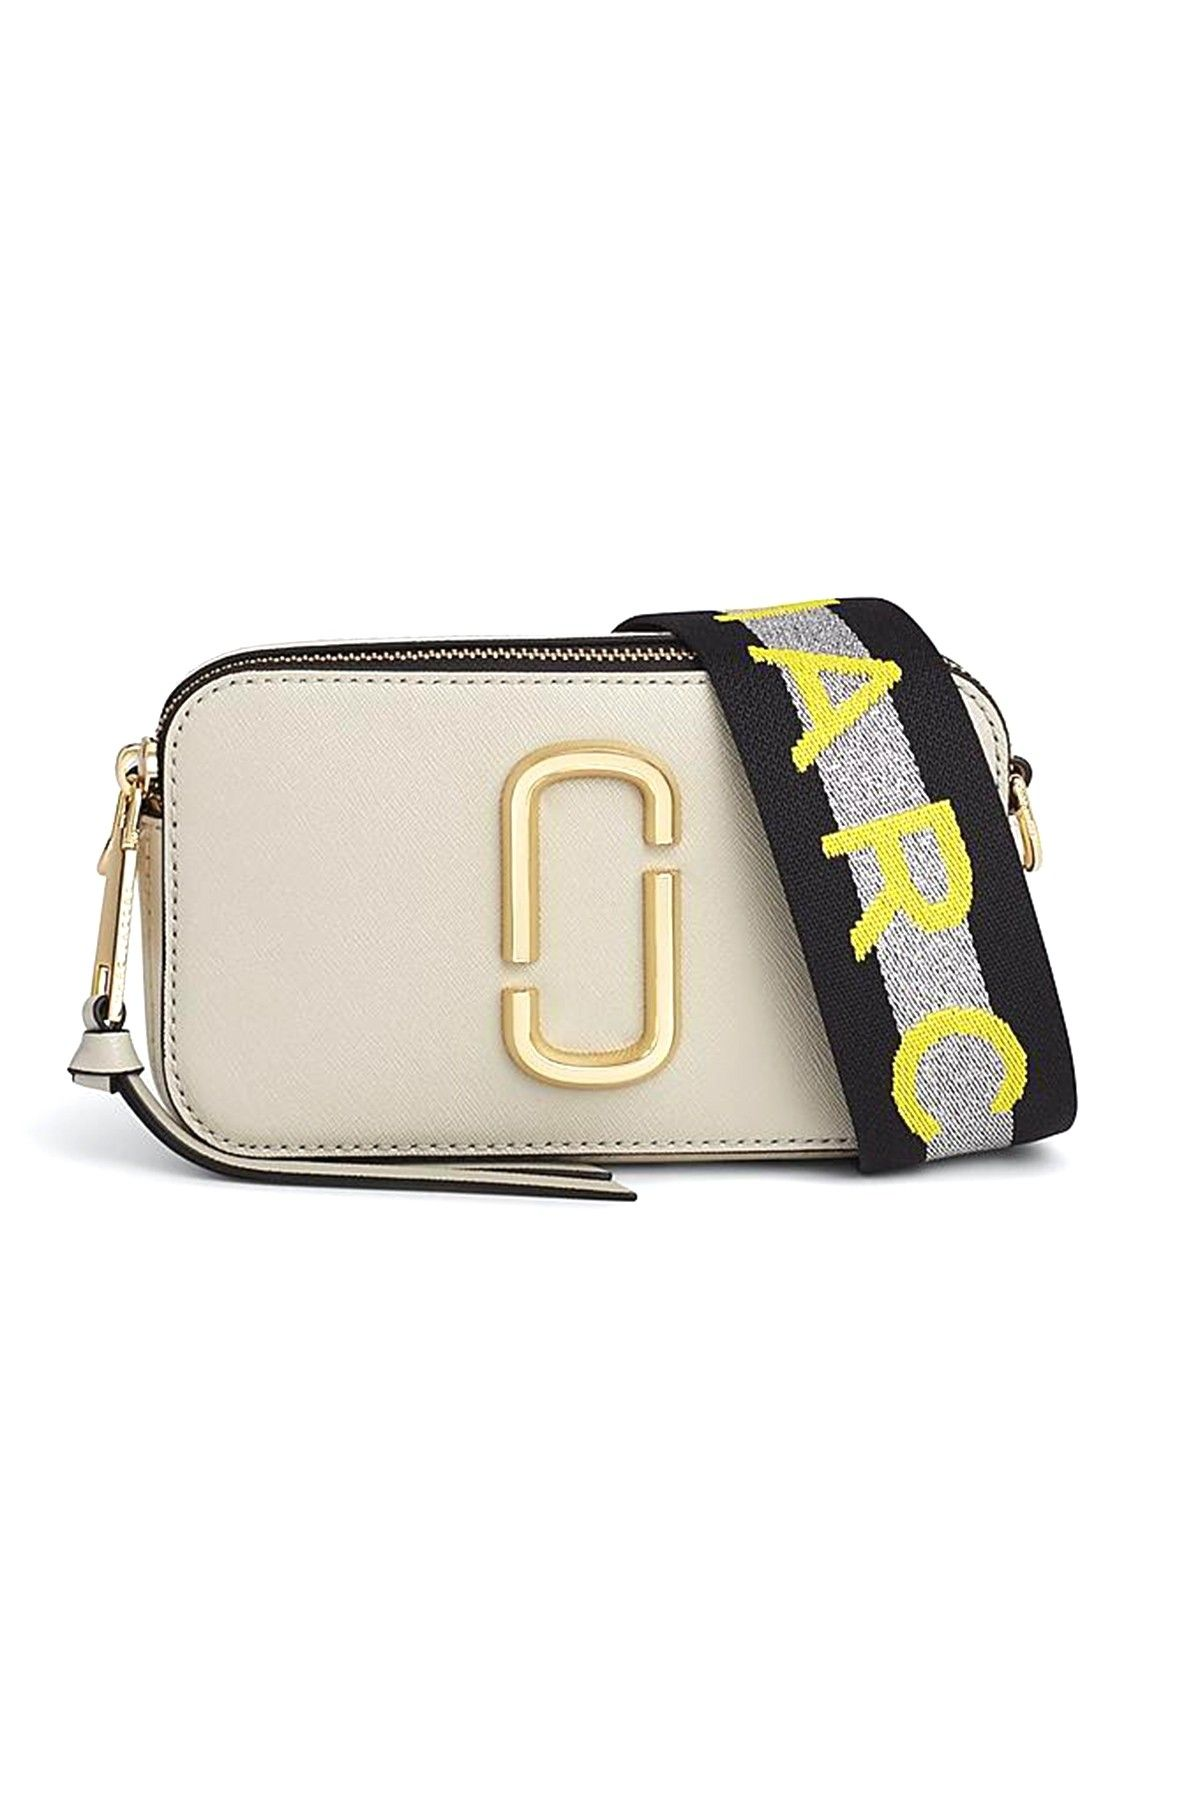 Marc Jacobs Snapshot Bag in Dust Multi   Hampden Bags in 2019 ... 7db2c6889601